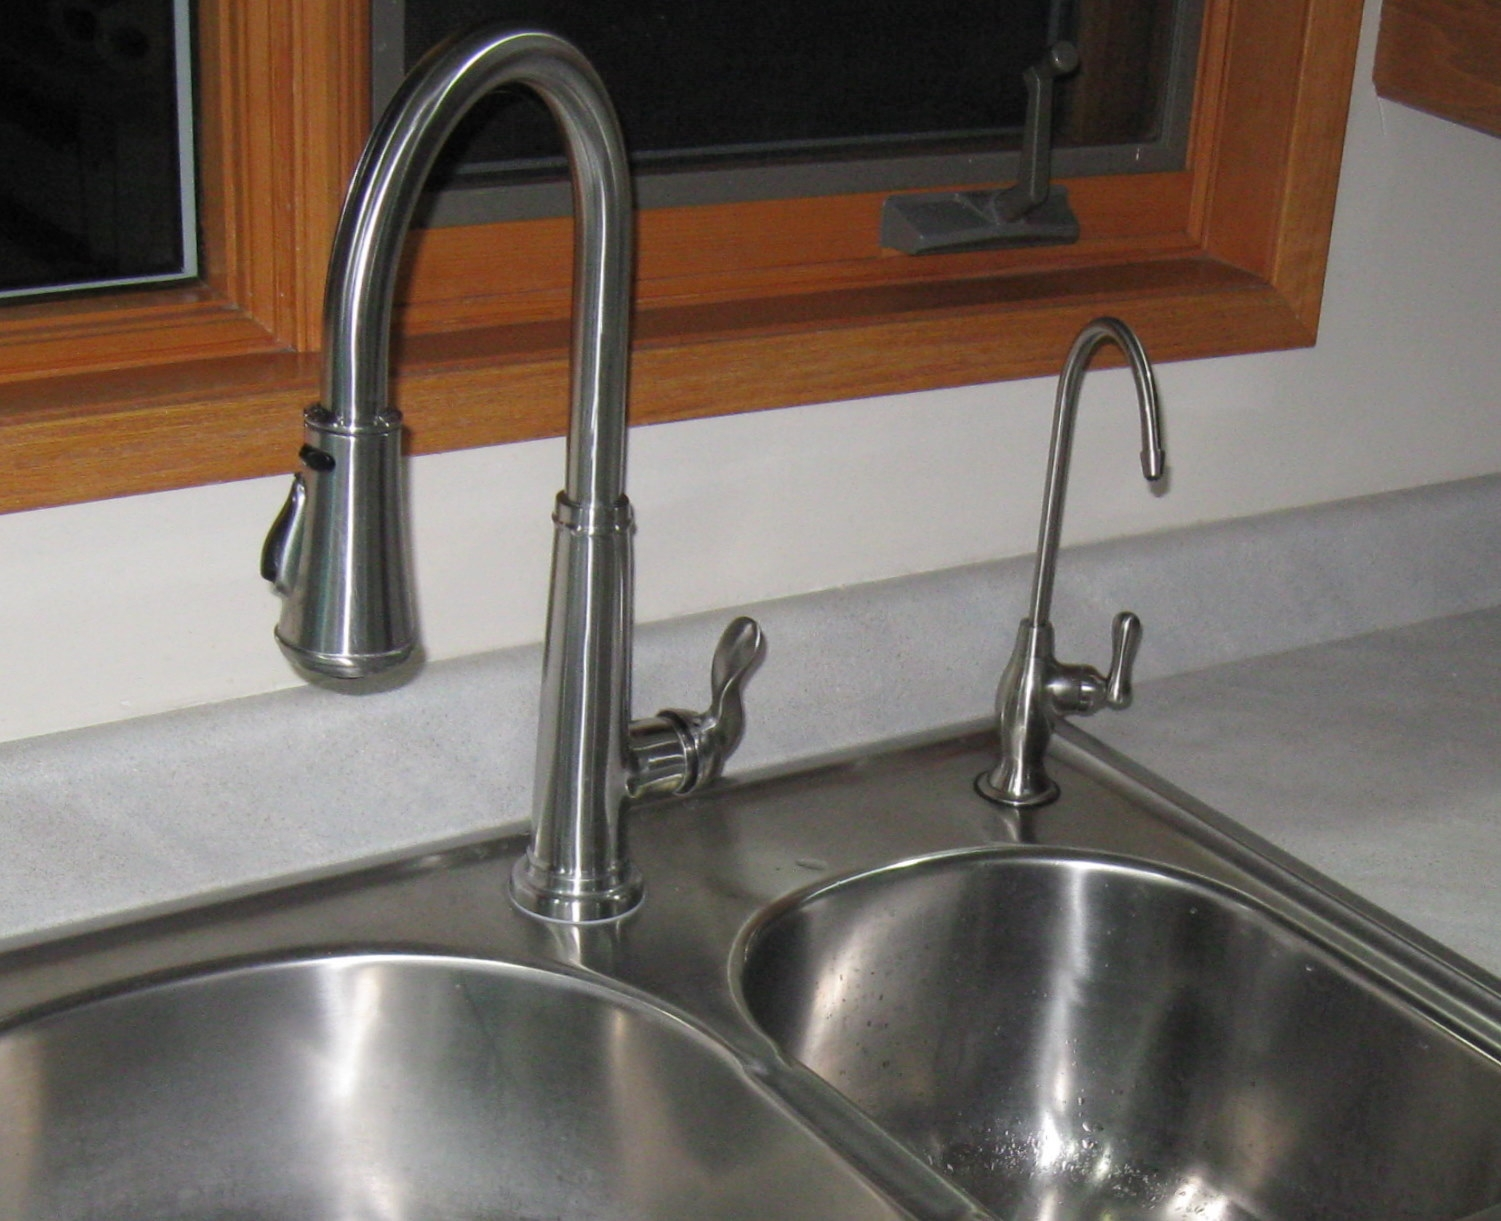 Ideas, ro faucets stainless steel ro faucets stainless steel reverse osmosis faucet stainless steel bathroom ideas reverse 1501 x 1221  .